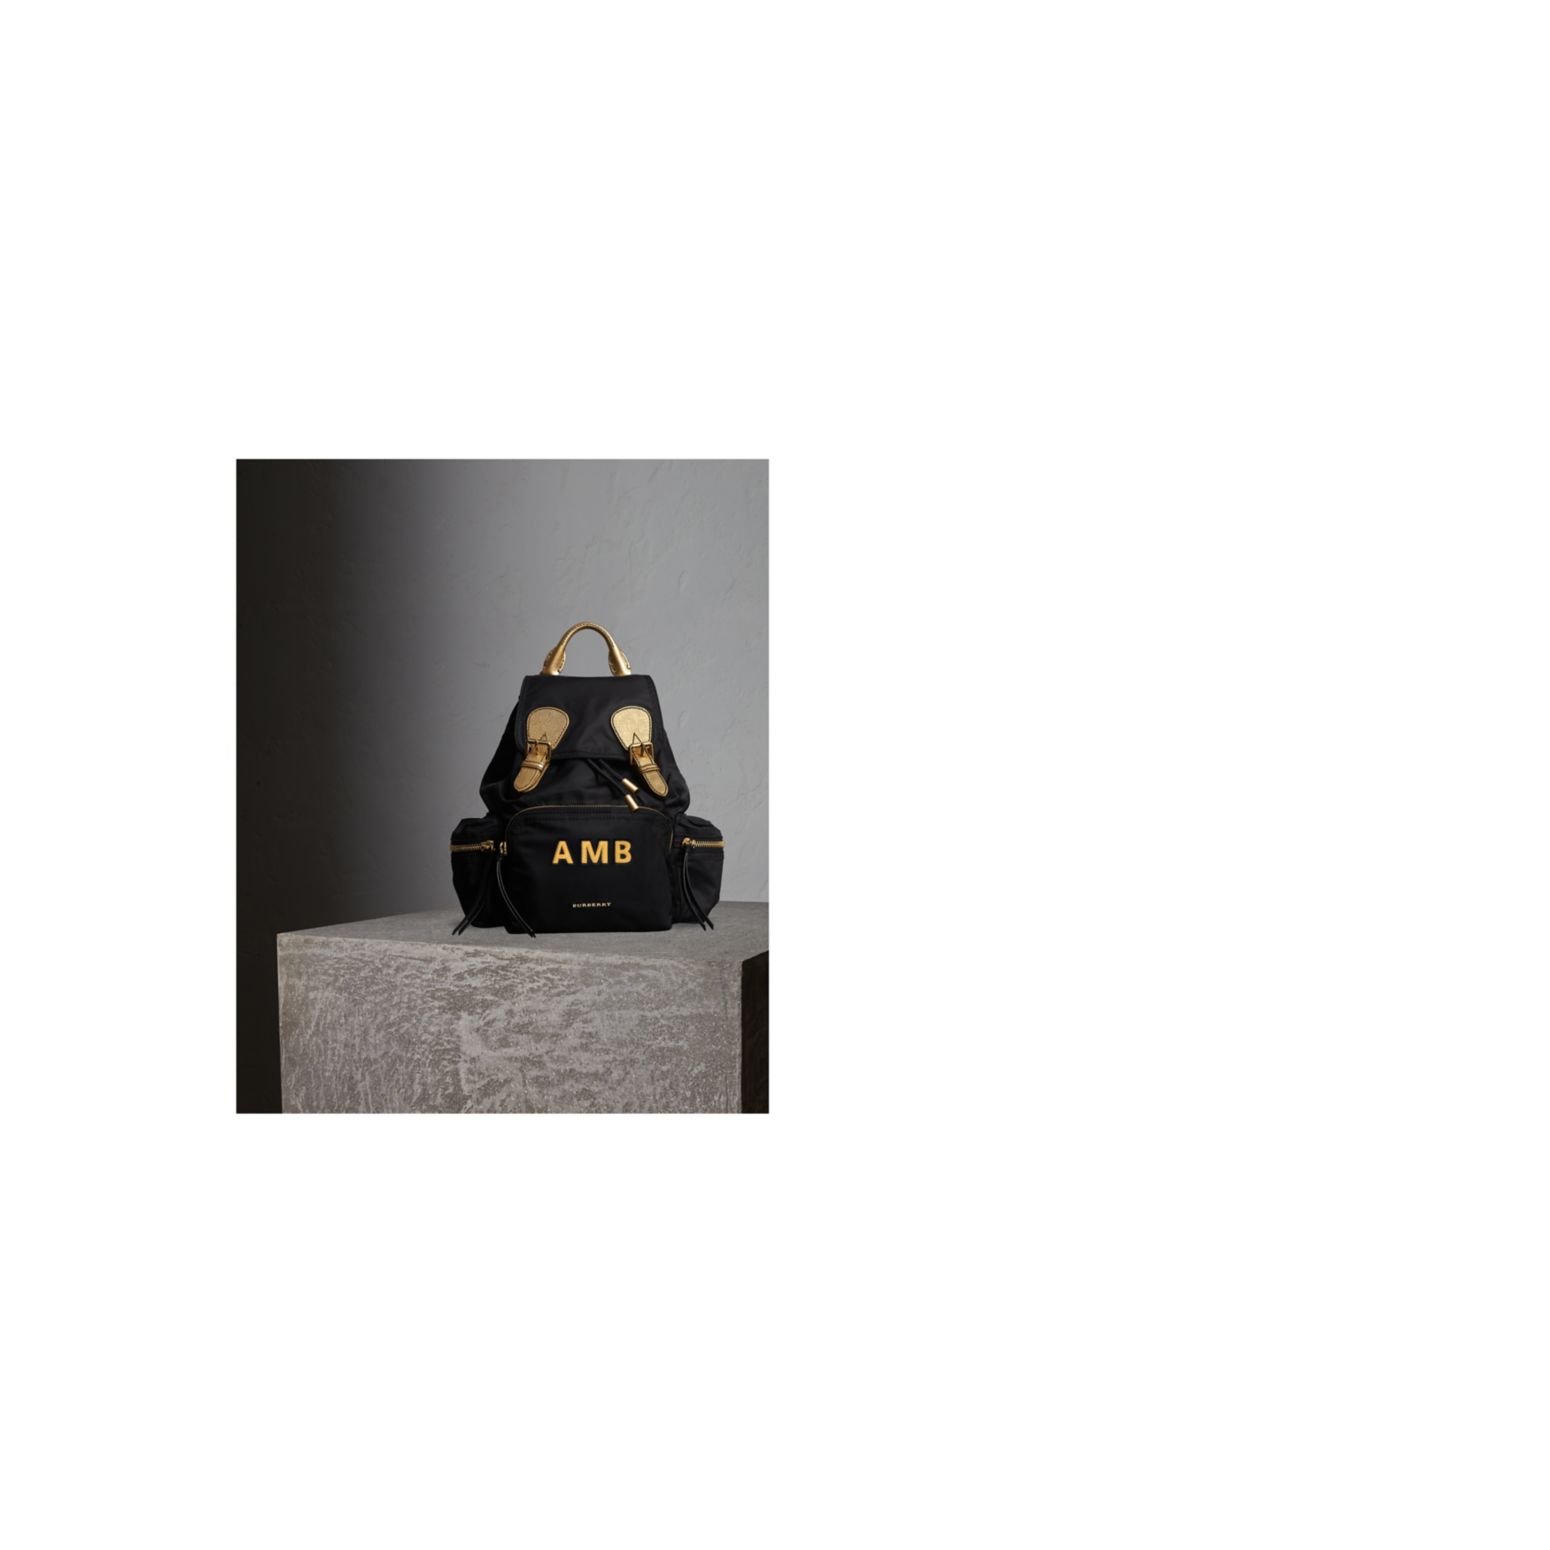 Sac The Rucksack moyen en nylon bicolore et cuir (Noir/or) - Femme | Burberry - photo de la galerie 2